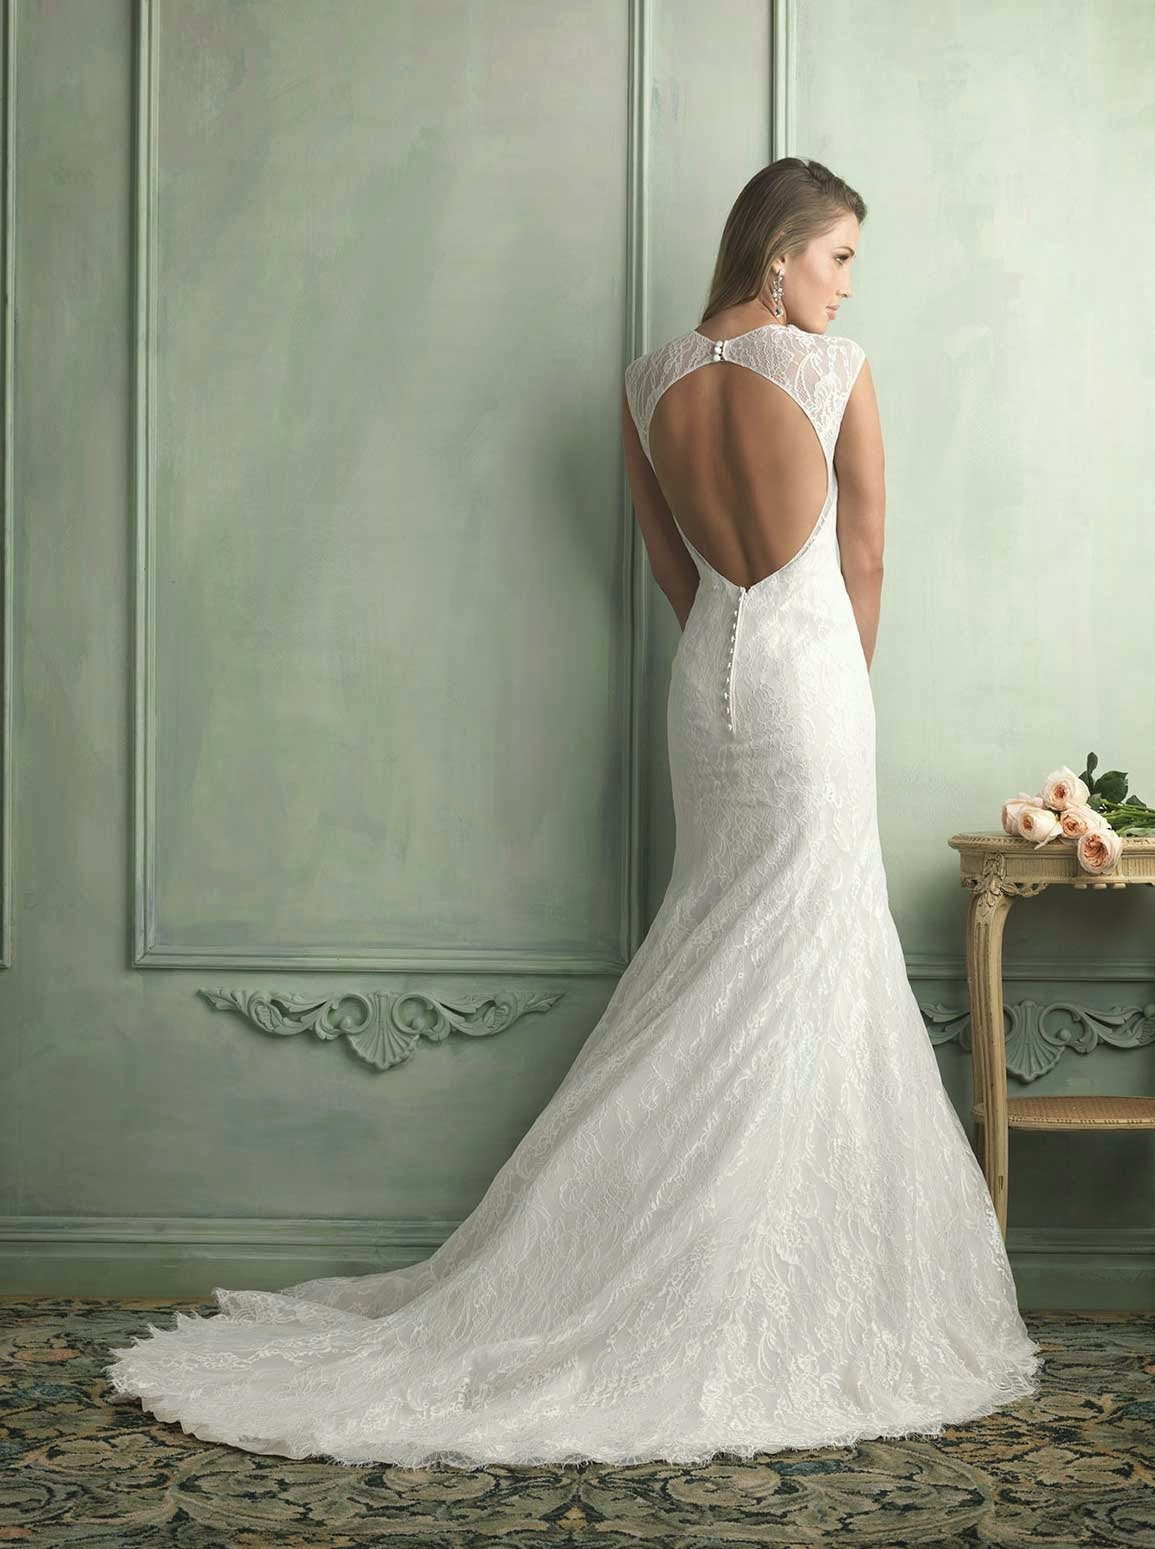 Backless White Rose Wedding Dresses Vera Wang Photos HD Ideas